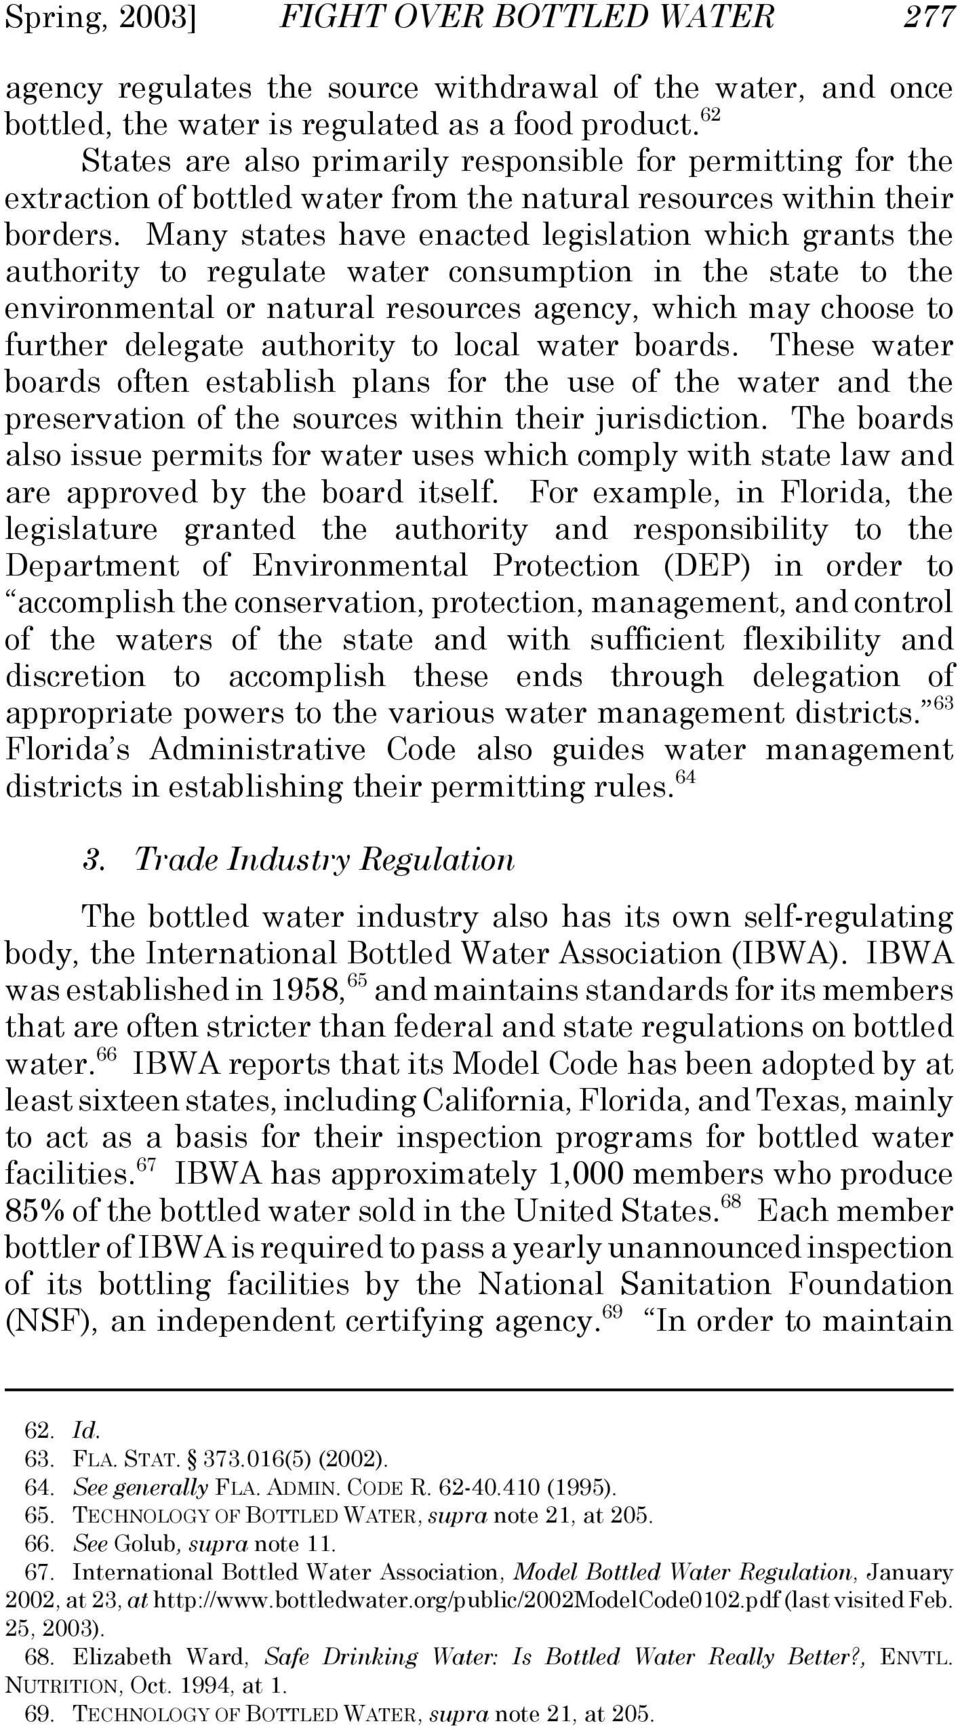 Many states have enacted legislation which grants the authority to regulate water consumption in the state to the environmental or natural resources agency, which may choose to further delegate